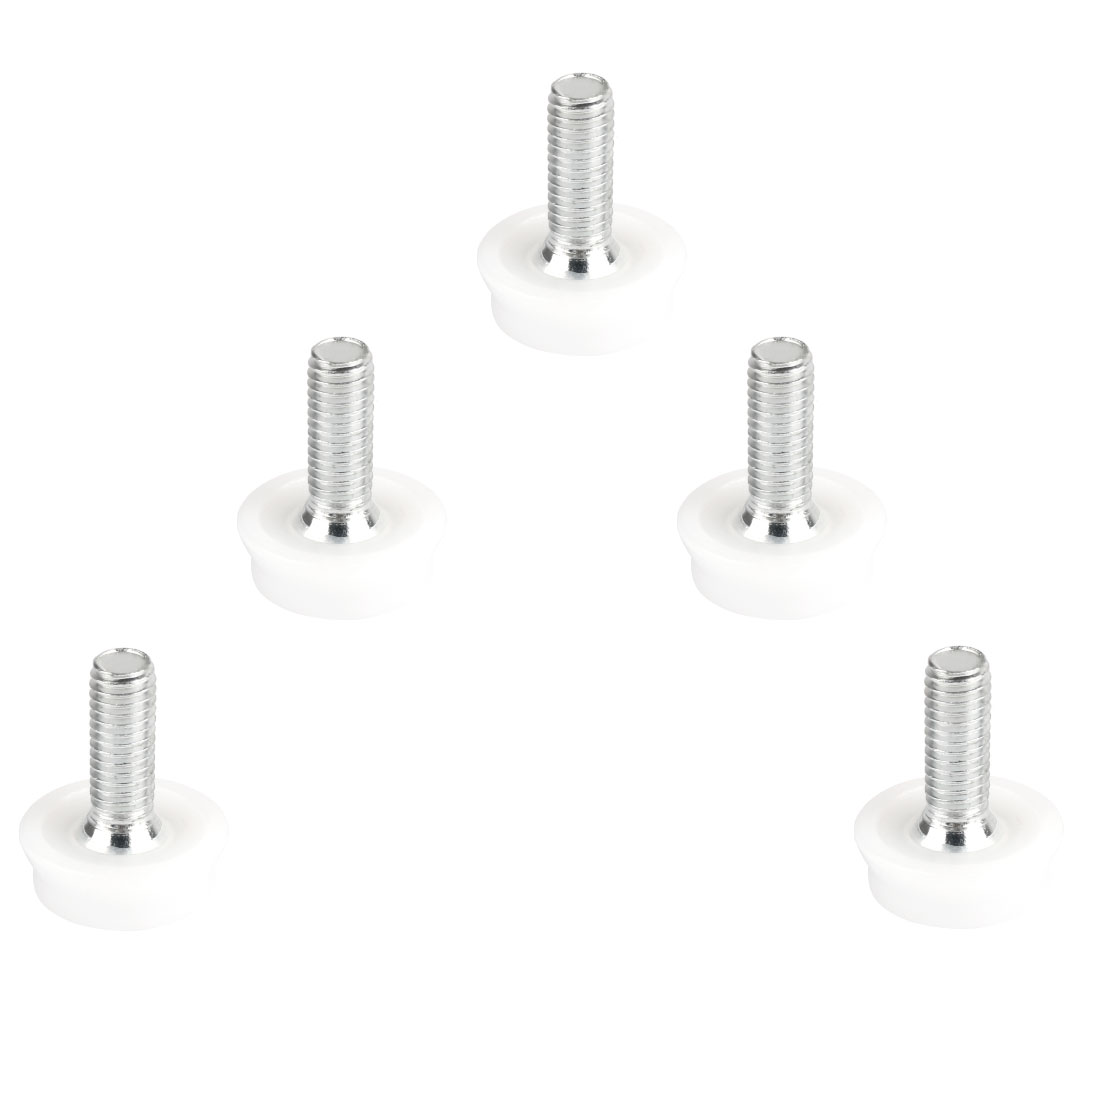 8mm x 22mm Thread Table Desk Adjustable Leveling Foot Feet 5 Pcs